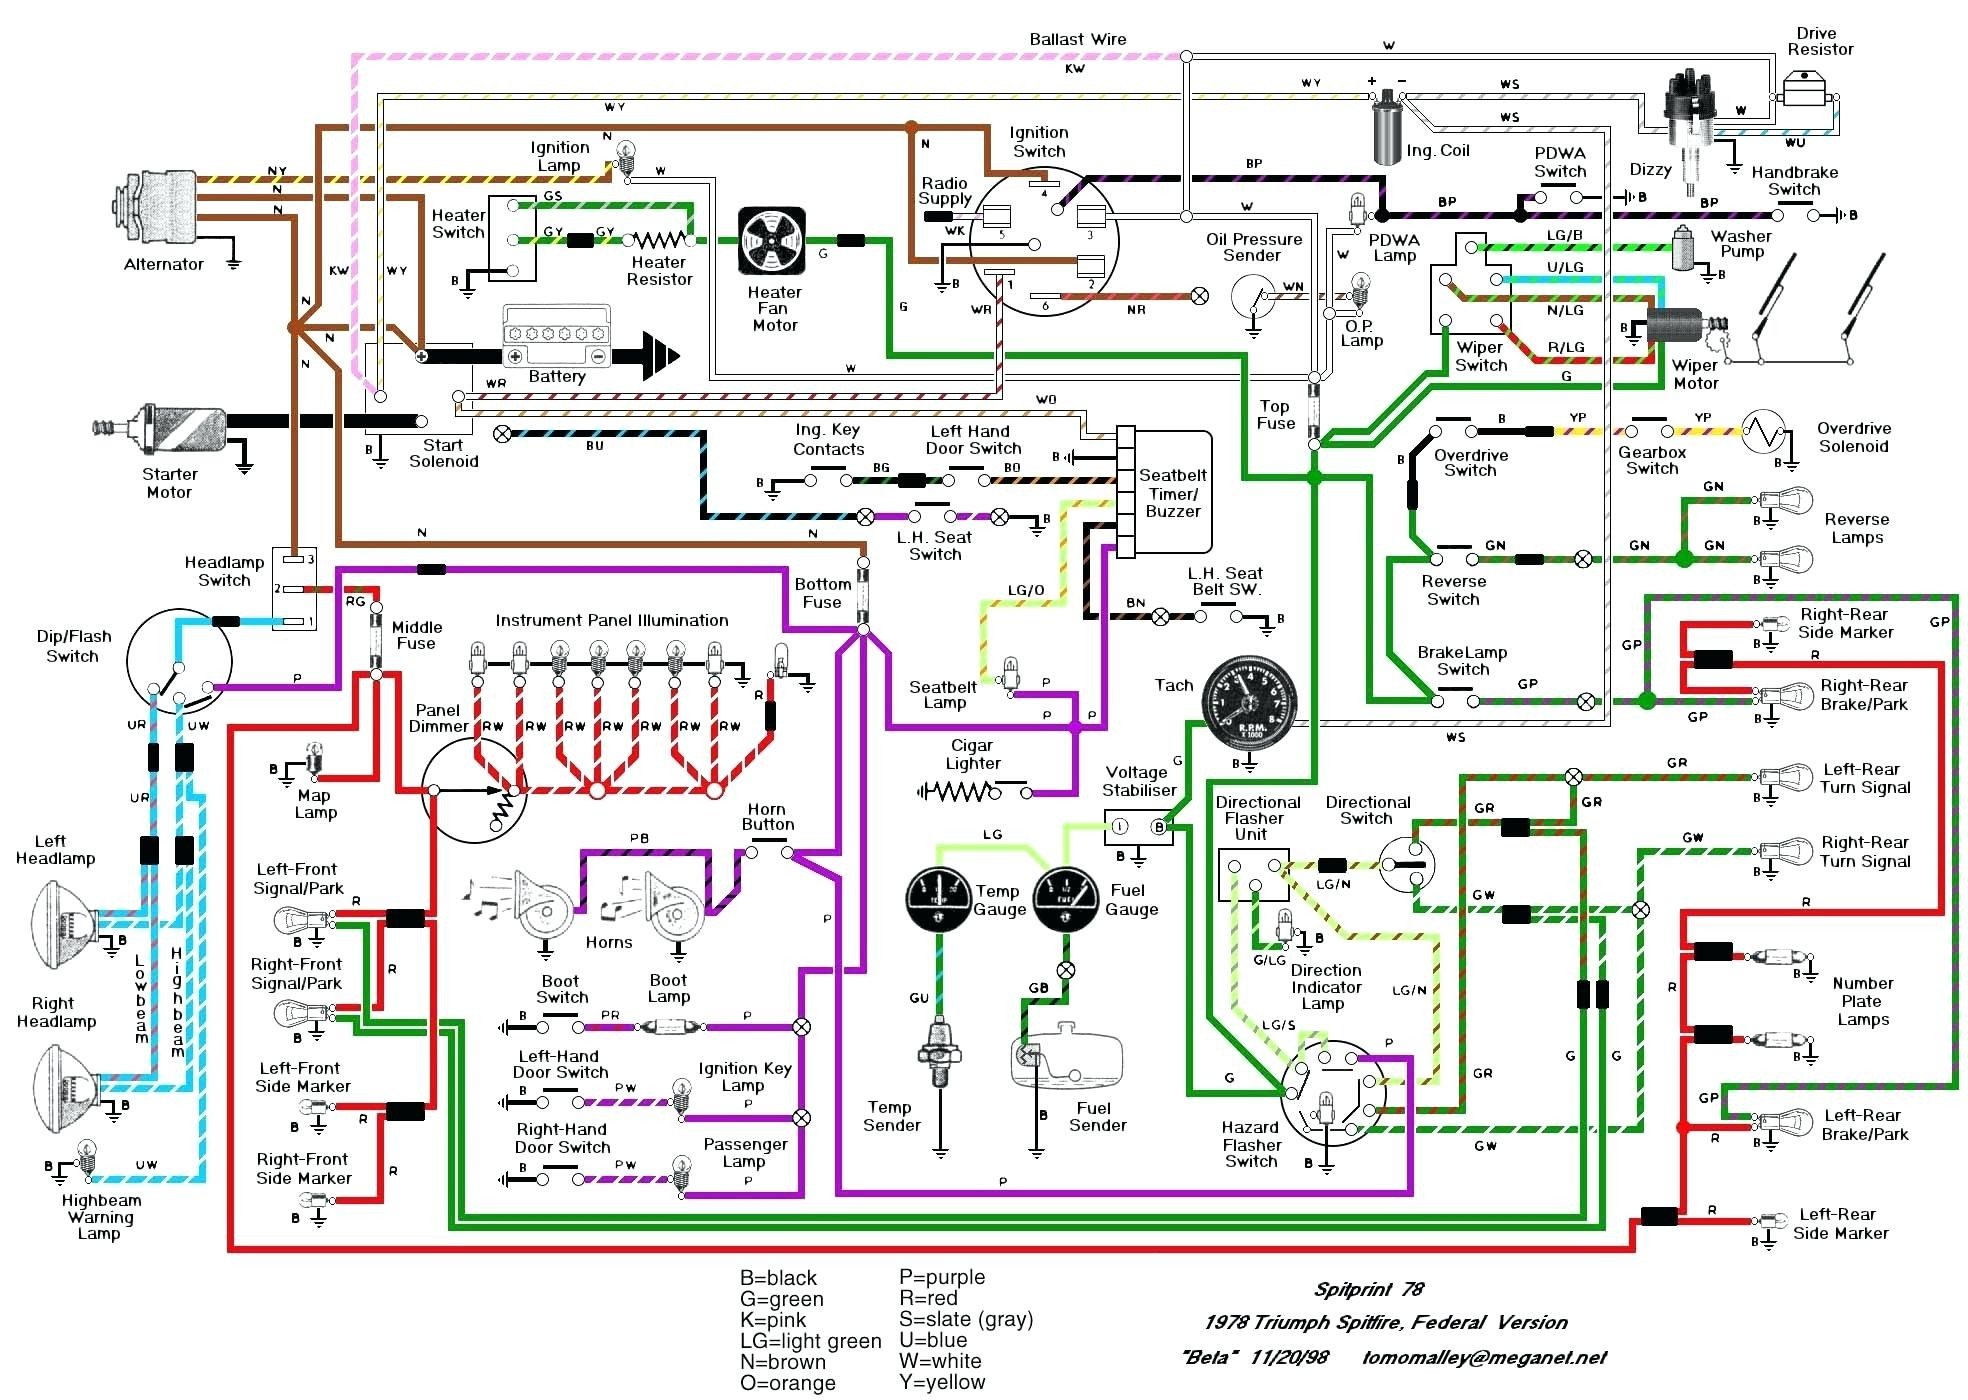 Wire Diagrams for Cars Wiring Diagram for Nest thermostat Diagrams ...